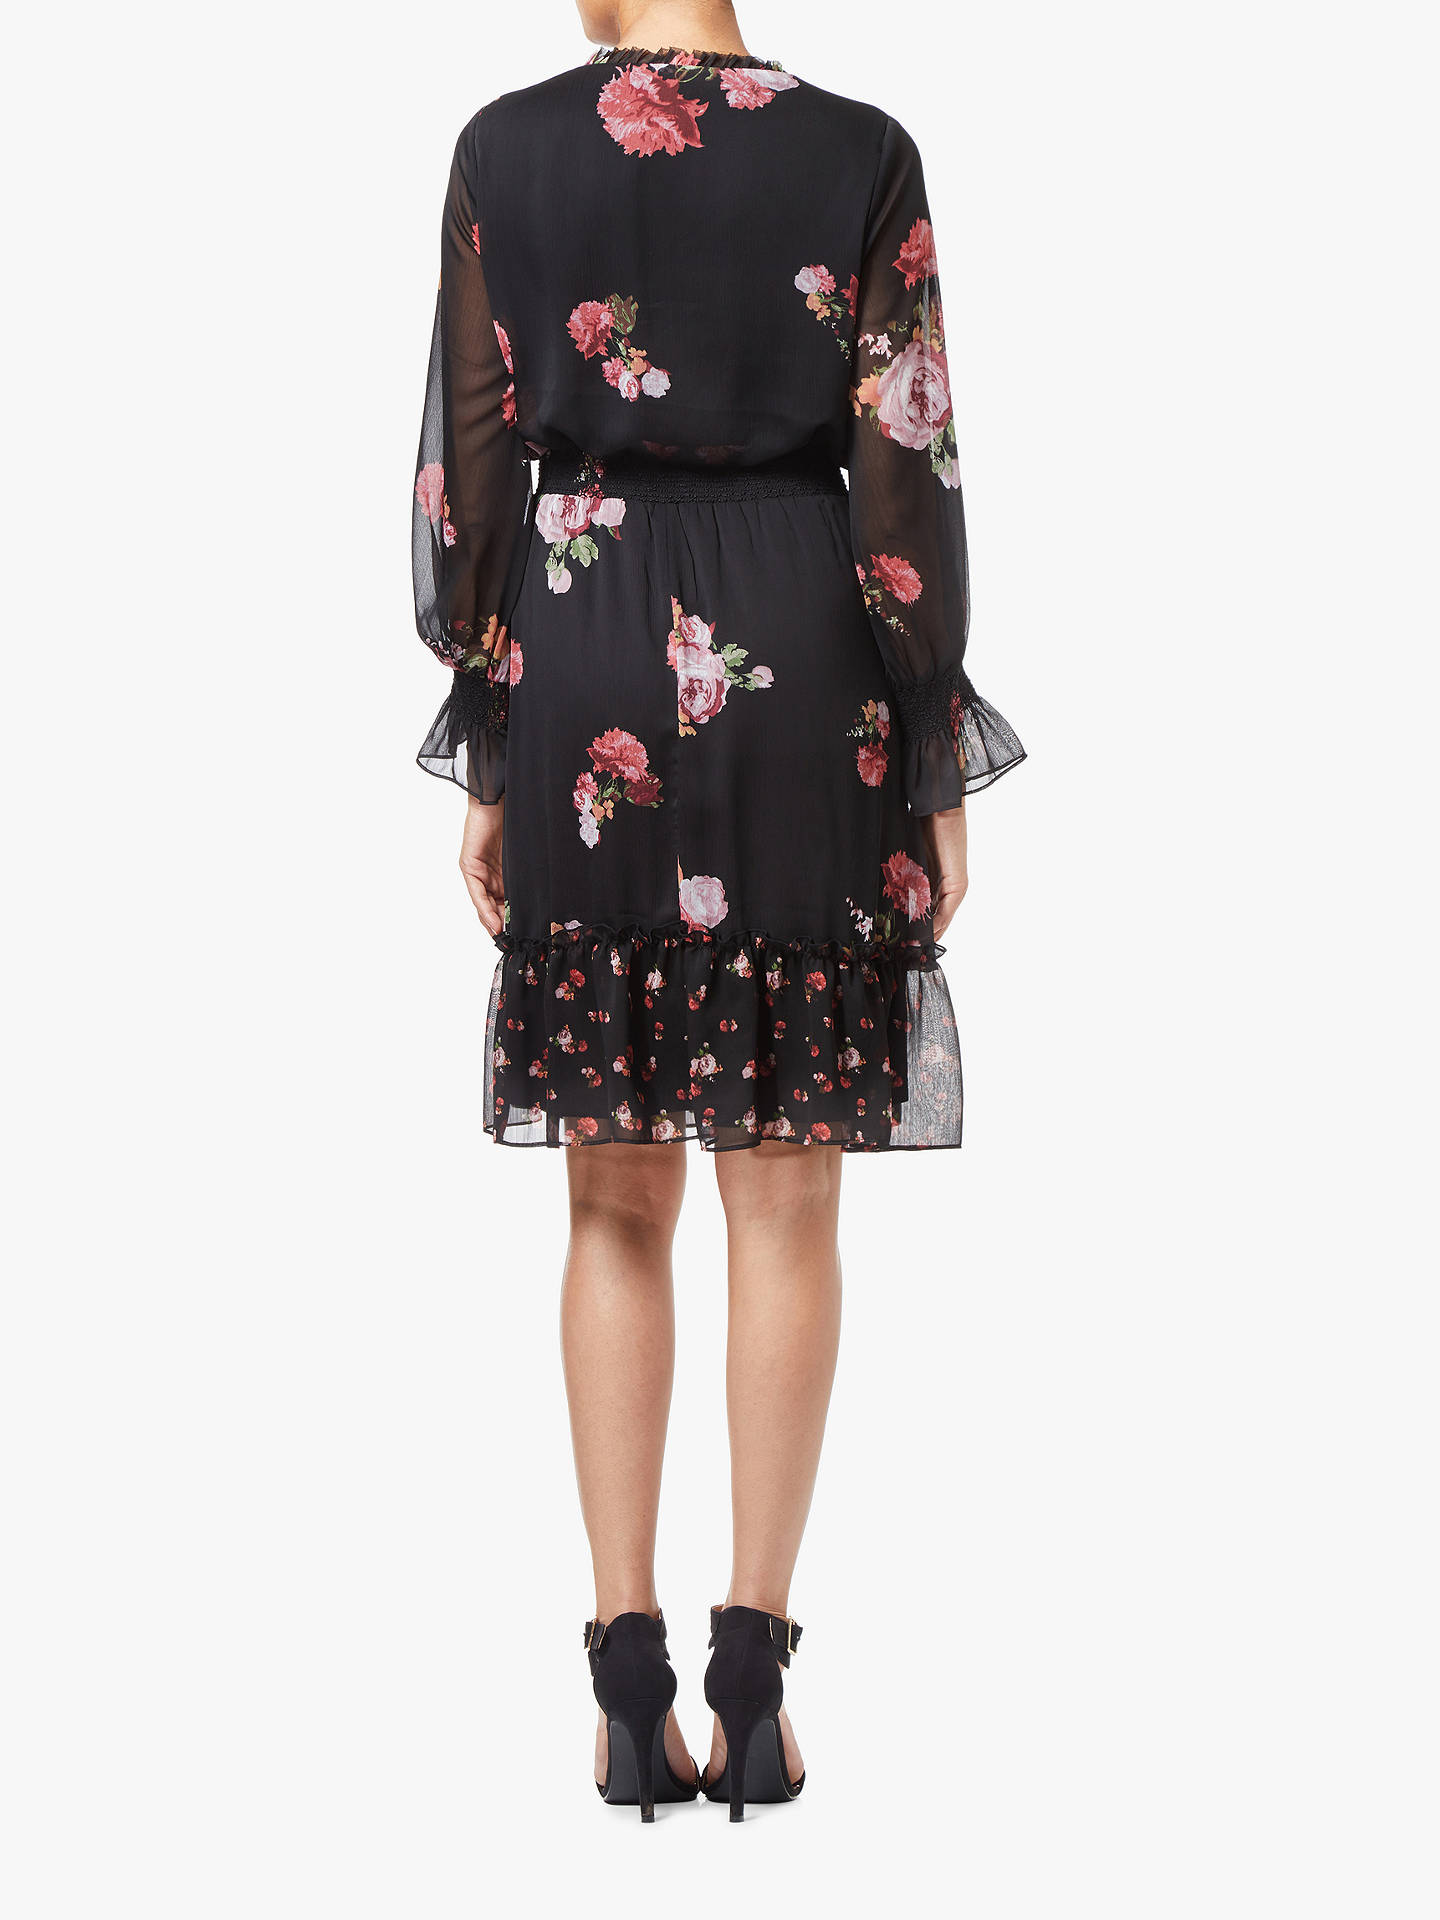 BuyAdrianna Papell Loving Boho Floral Print Dress, Multi, 12 Online at johnlewis.com